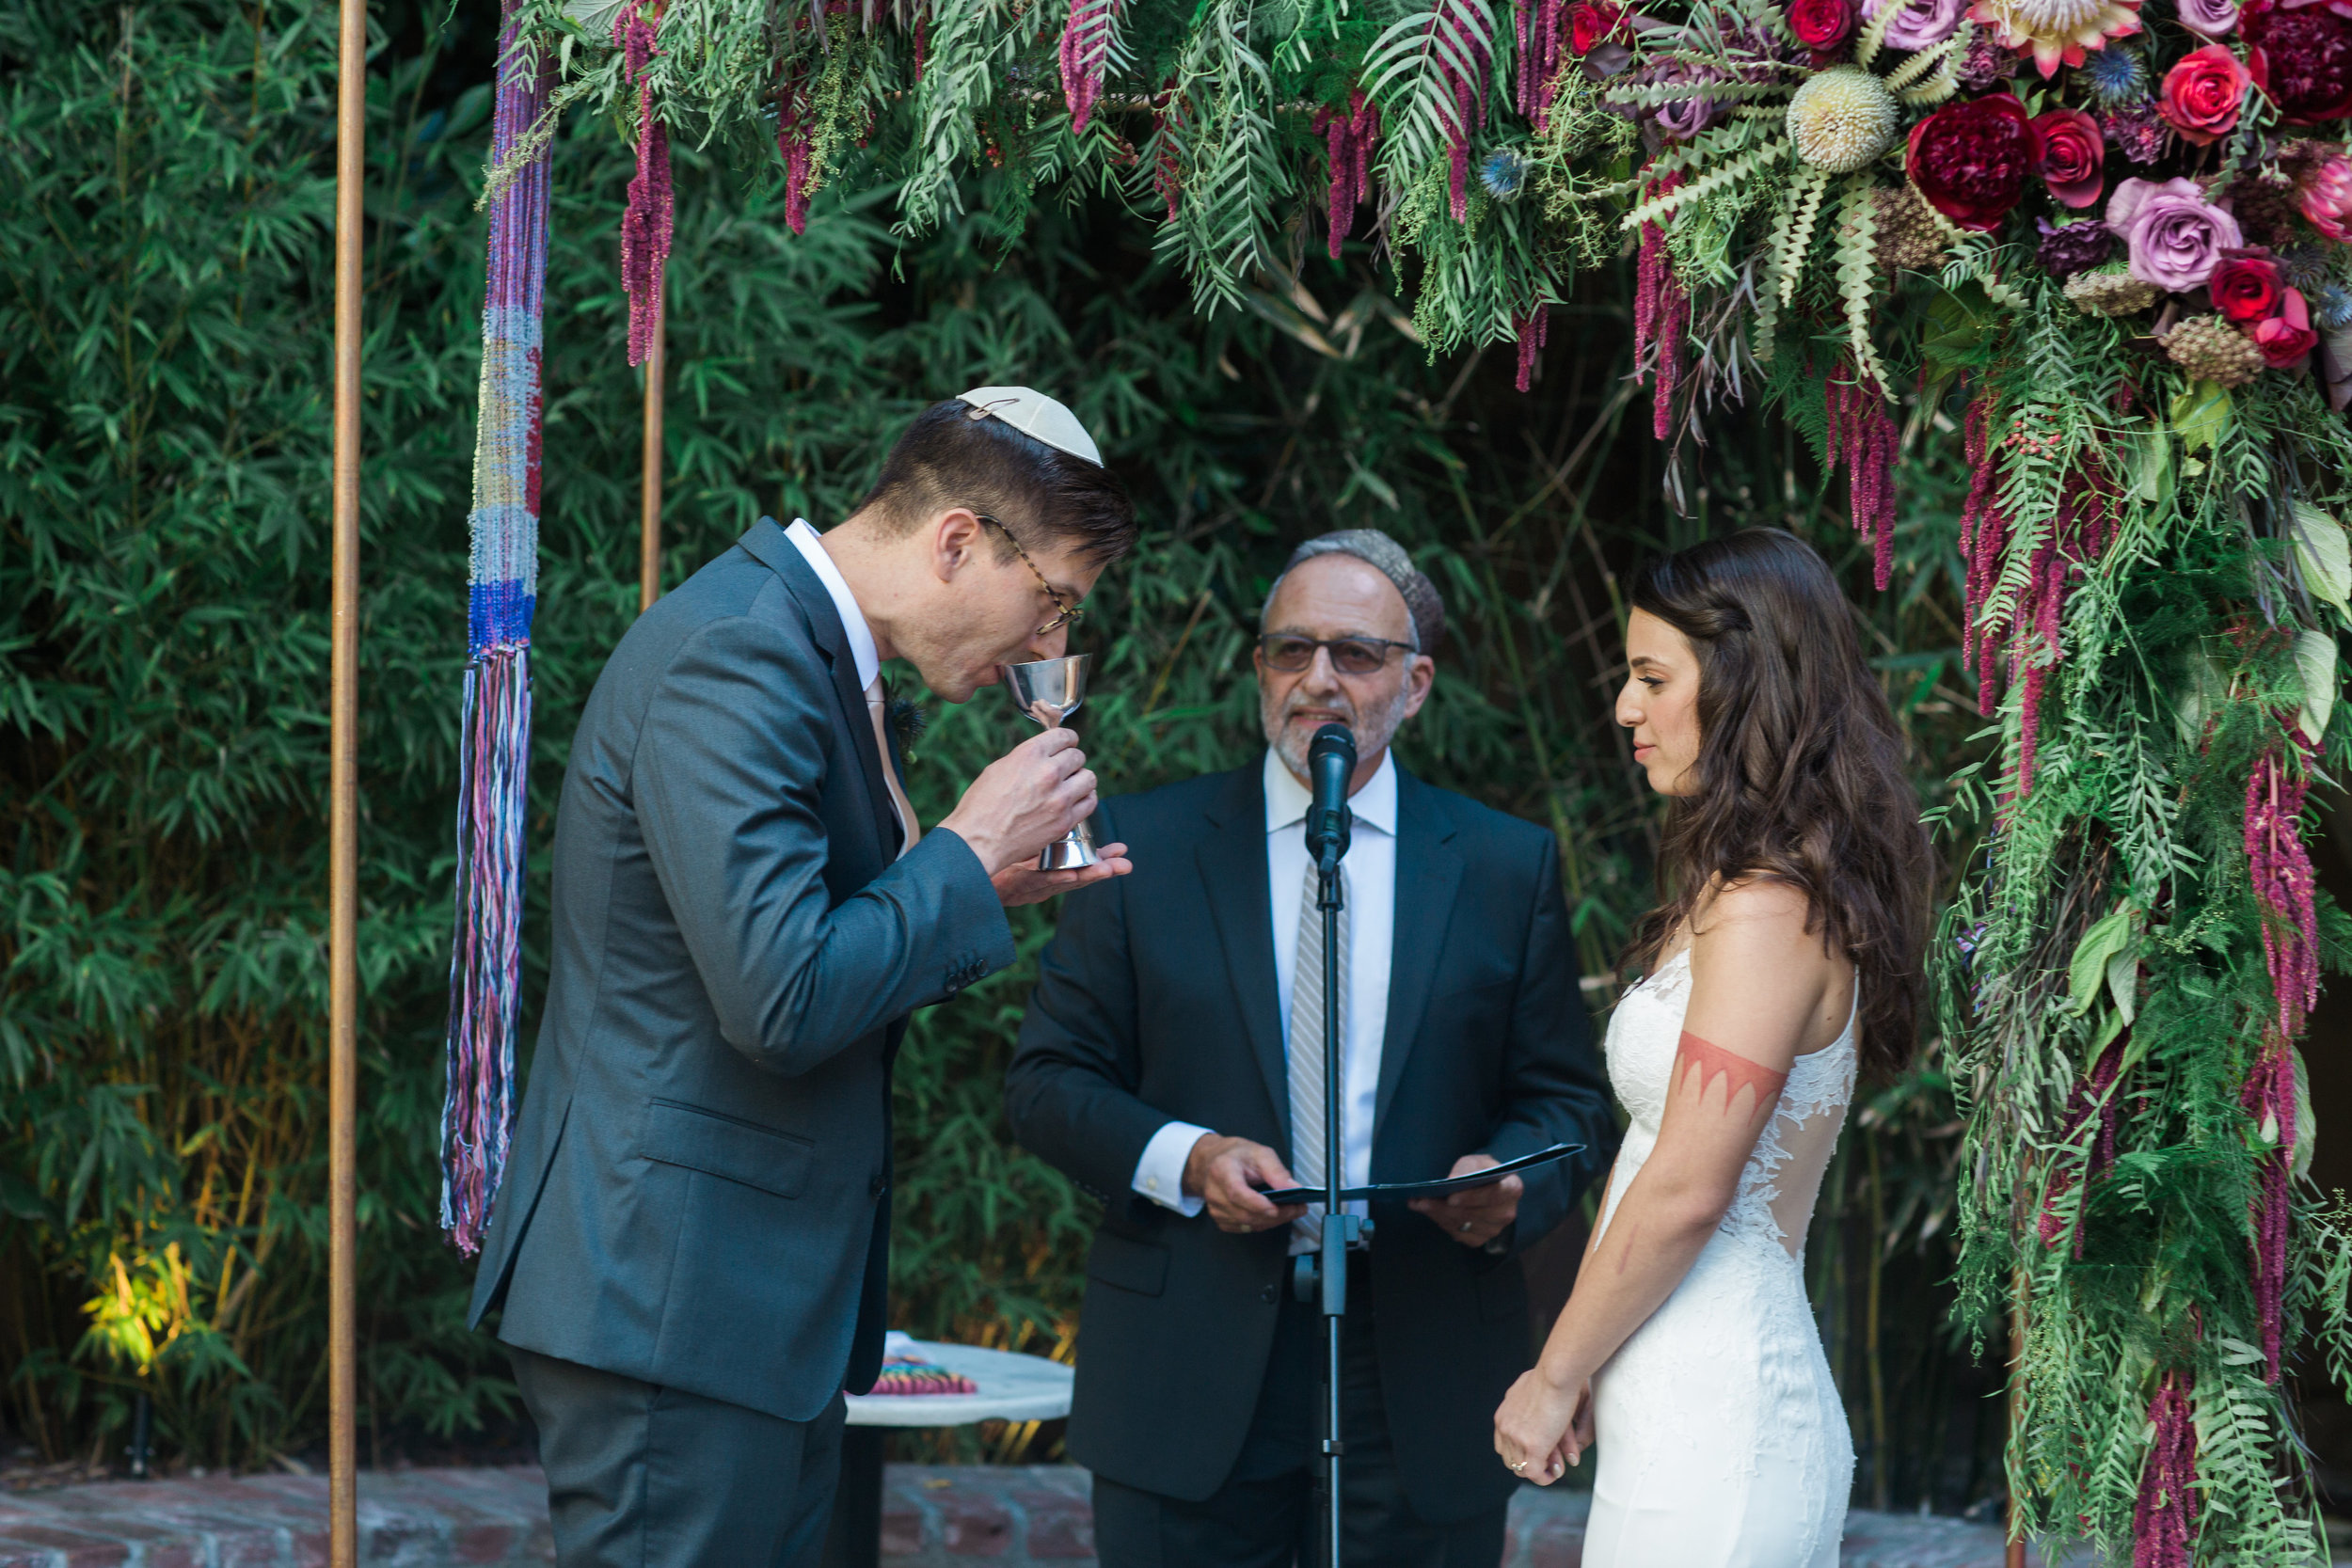 Kiddush cup,  Jewish Wedding Ceremony at Ruby Street, Photographer:  Casey Brodley,  Florals:  Shindig Chic